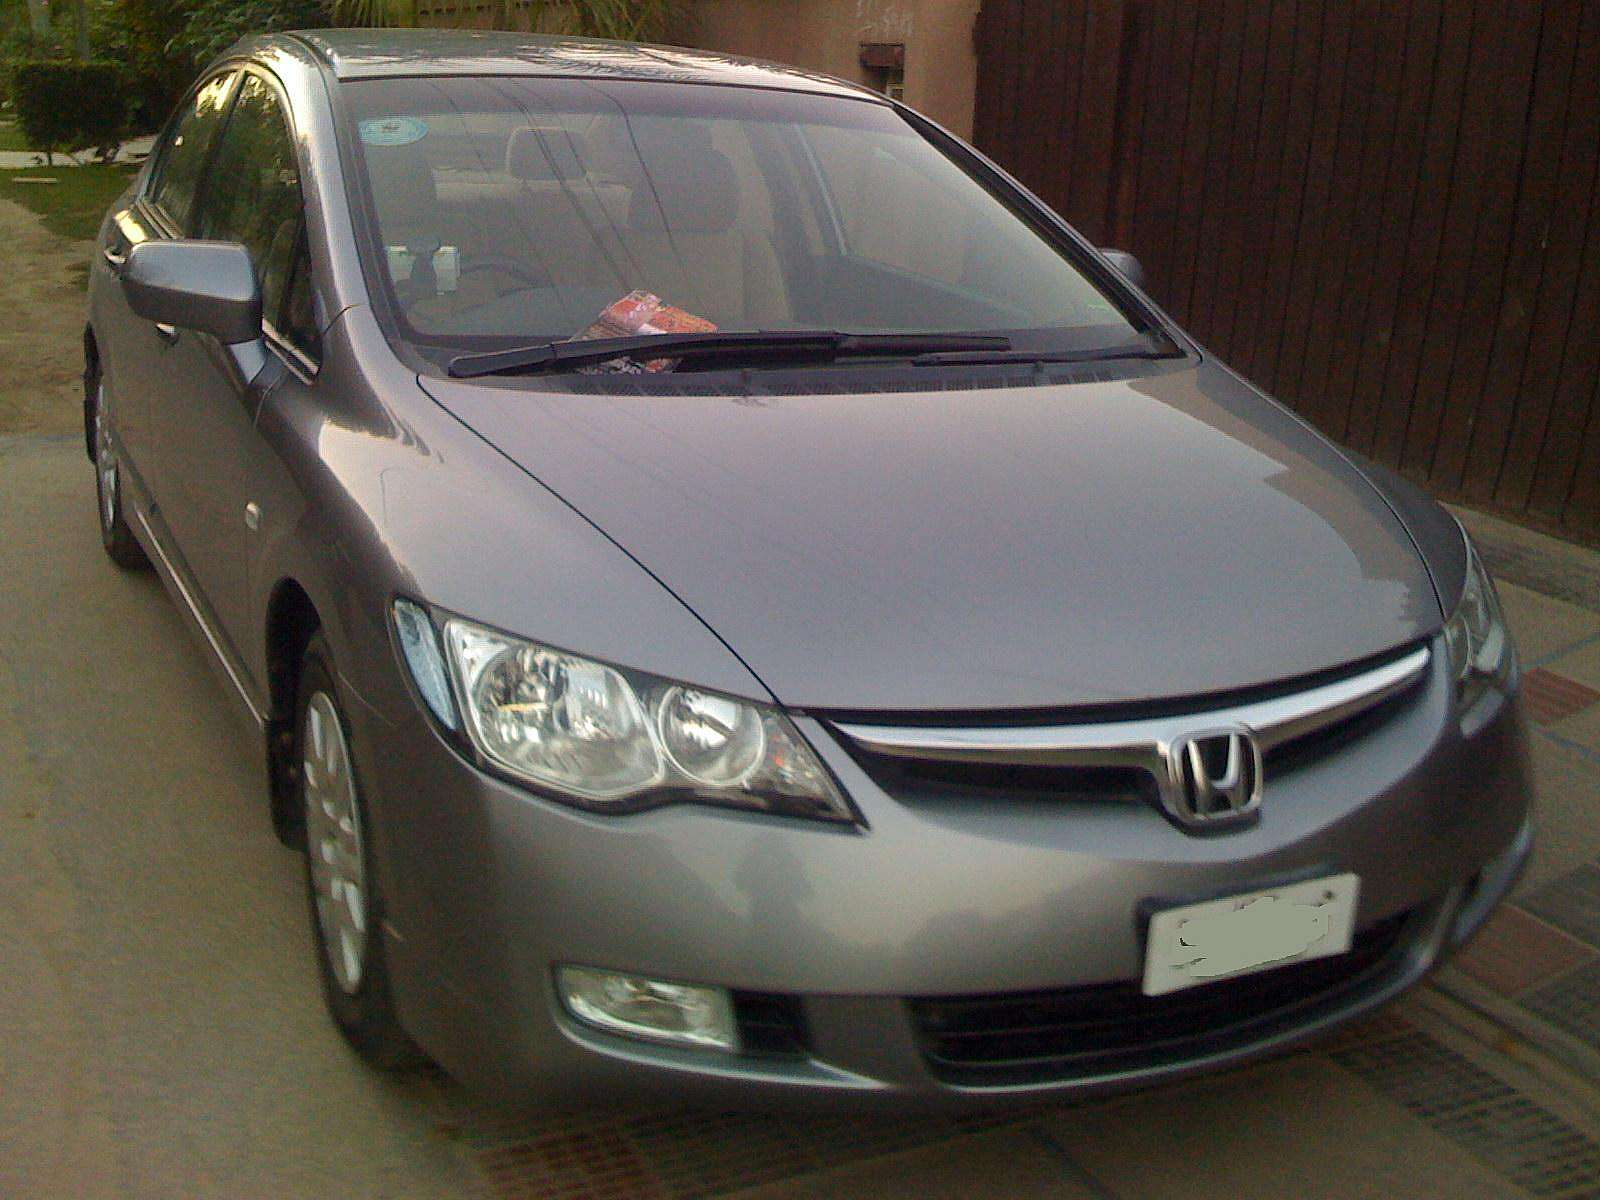 Used Honda Civic for Sale Lahore Free Classifieds Free Download Image Of Wallpaper